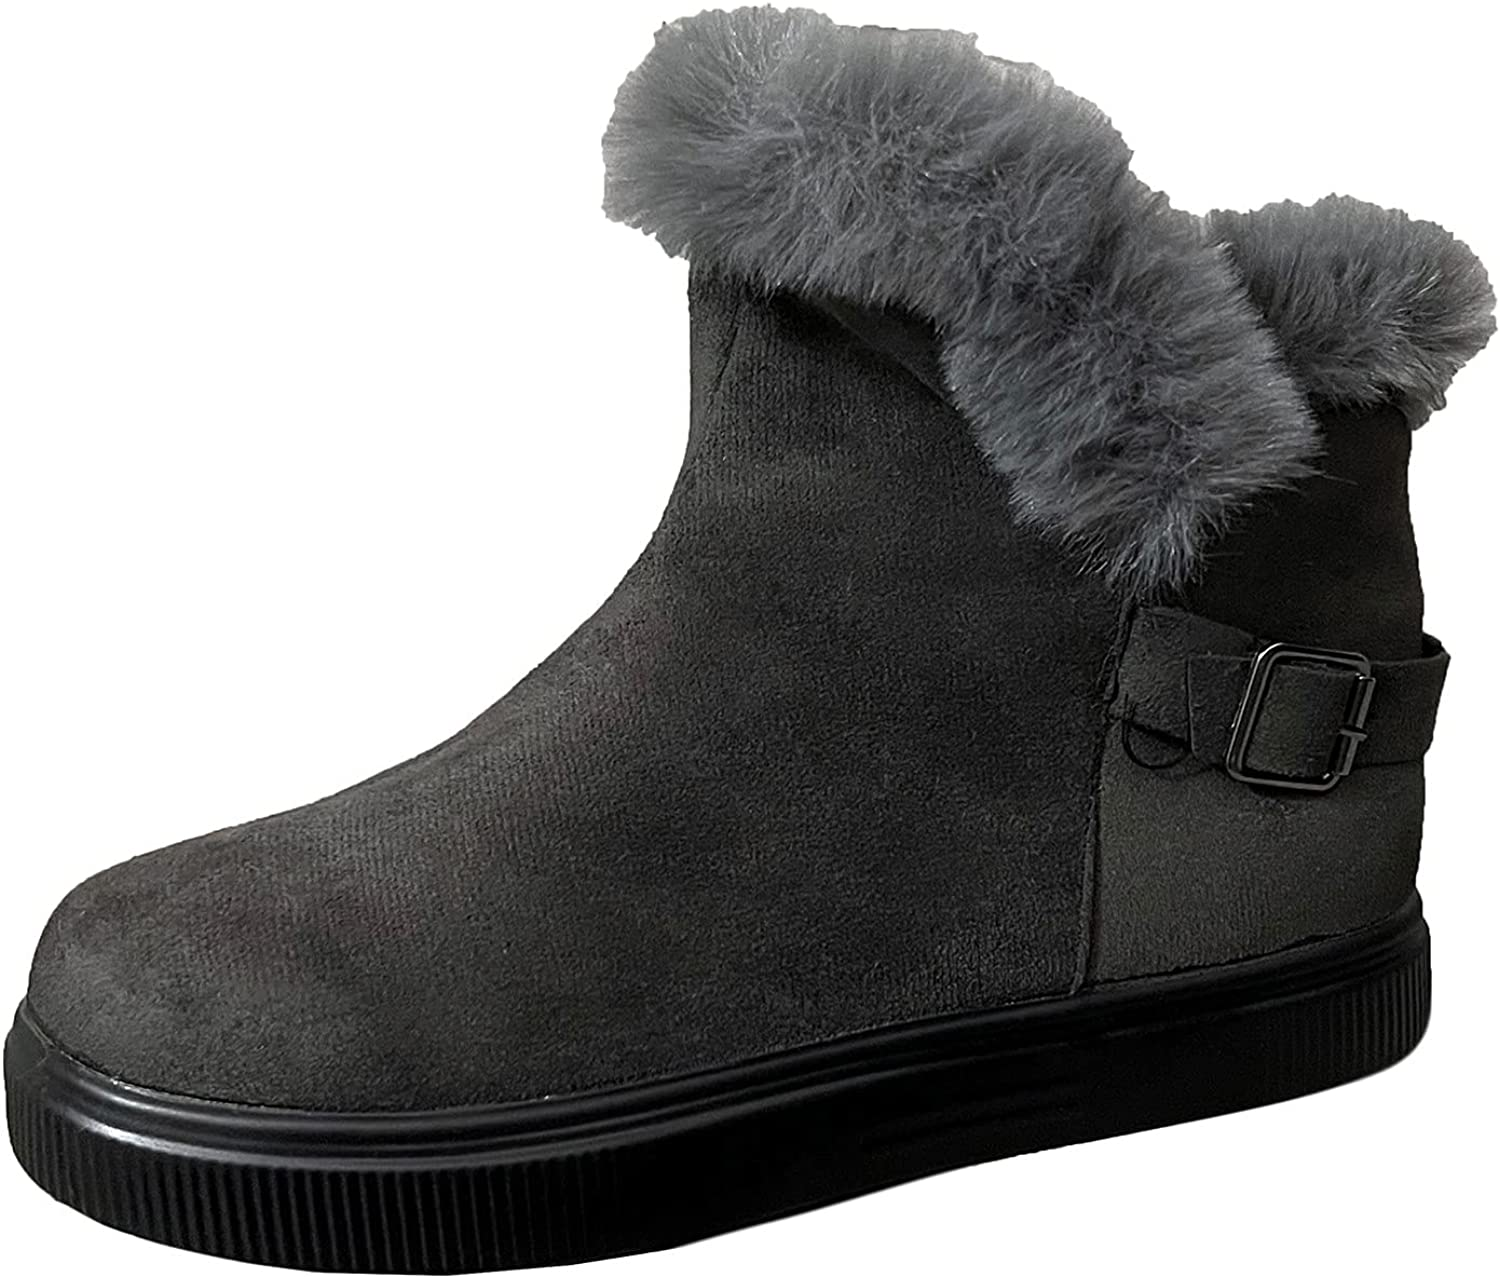 Boots for Women Casual Shoes Breathable Slip-on Wedges Platform